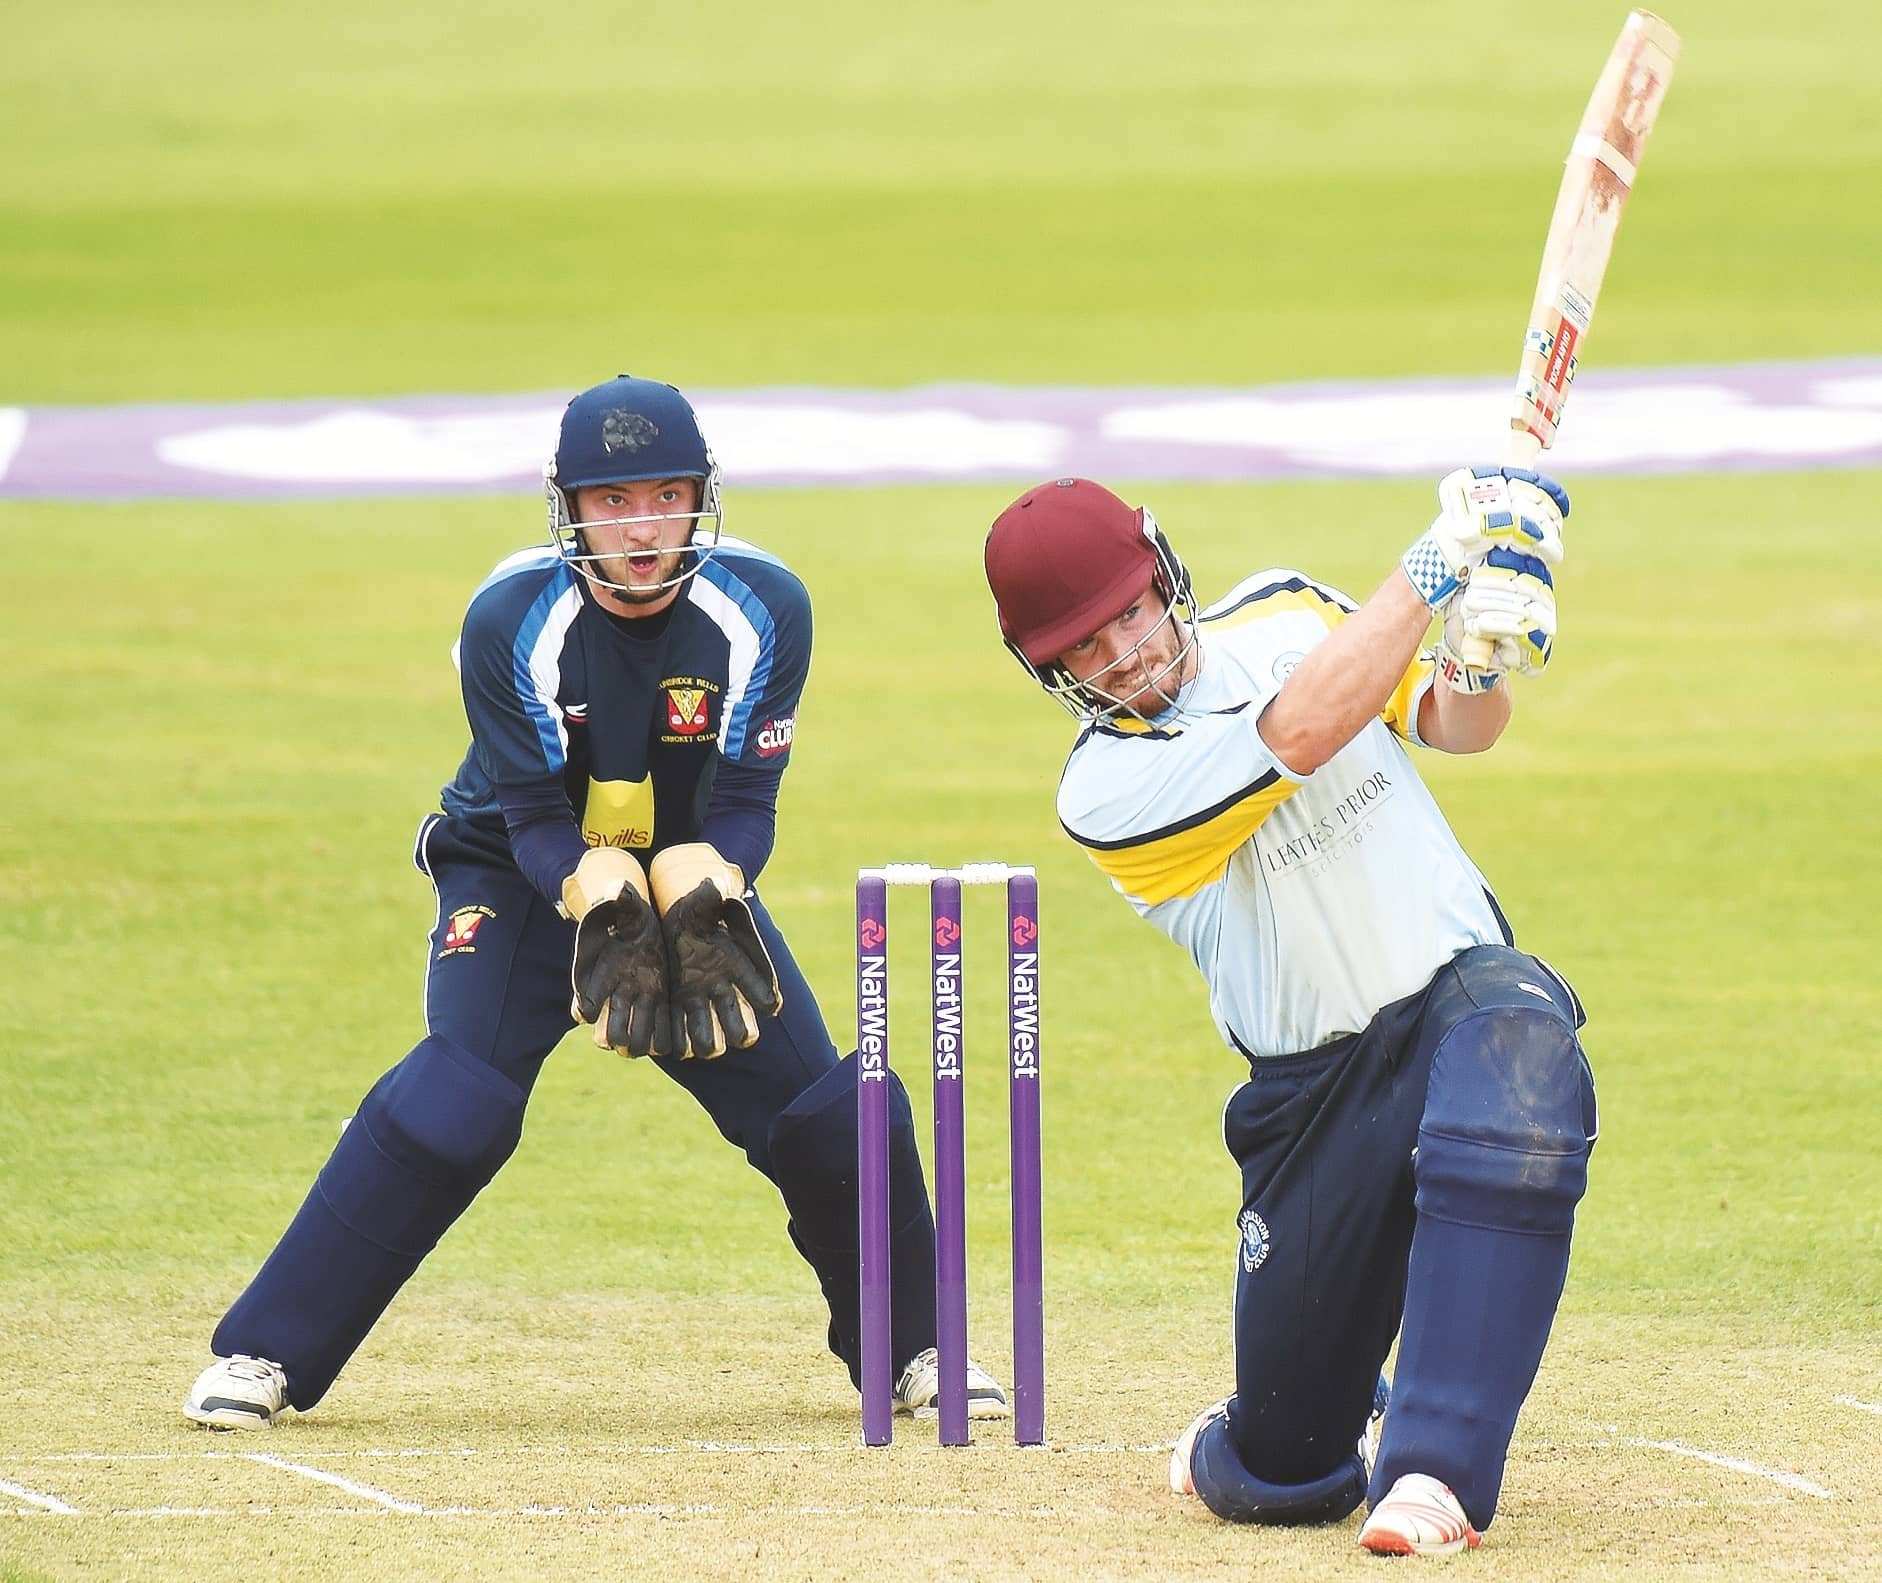 Gatting Is No Ordinary Joe For Soaring Swardston